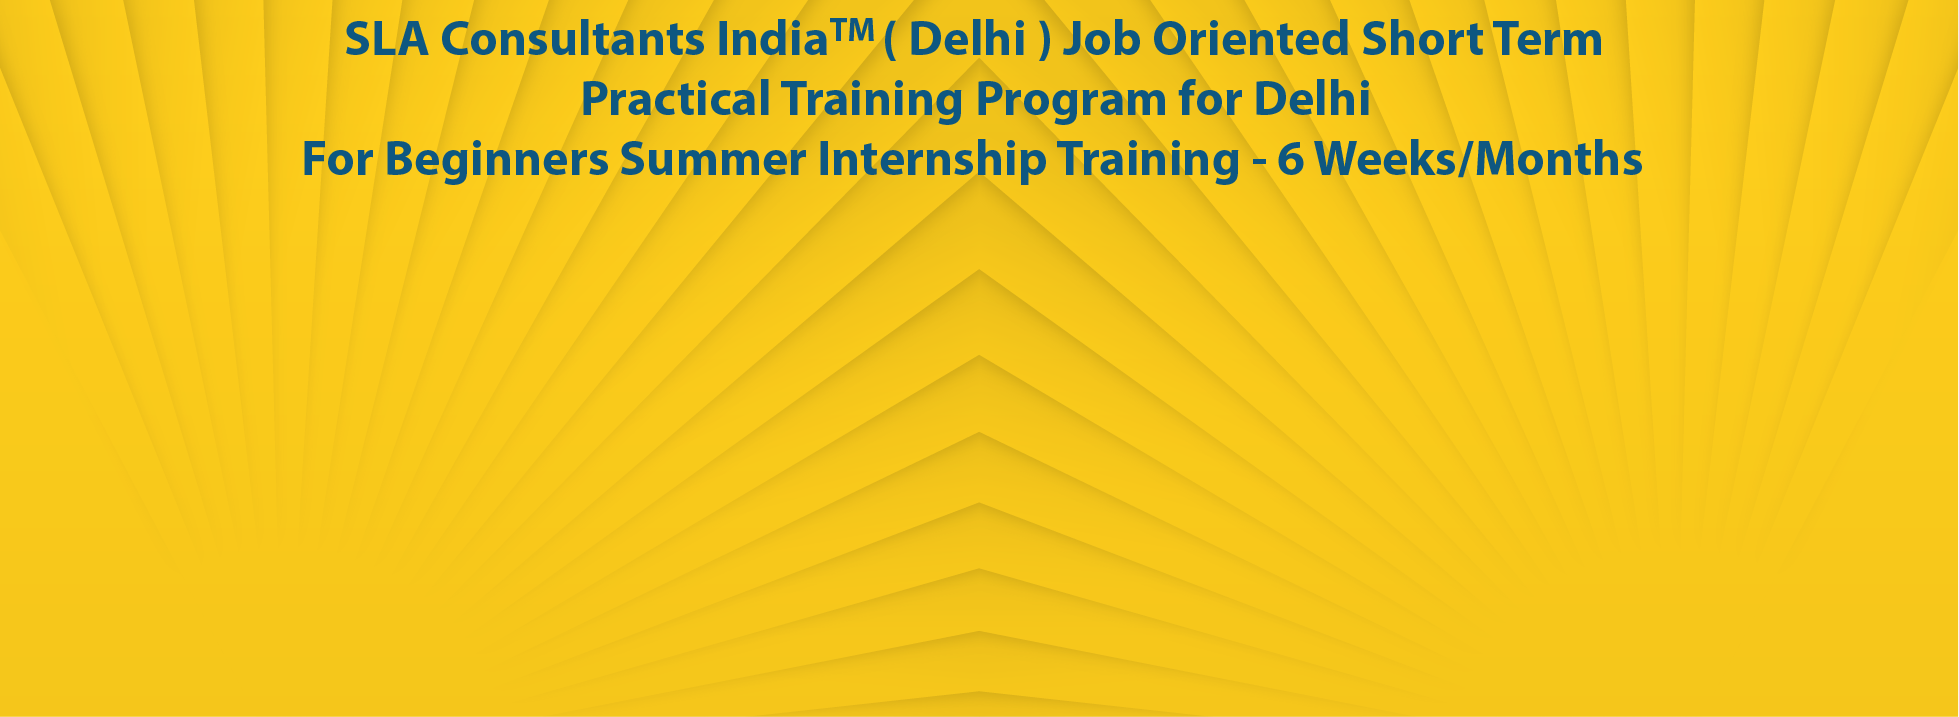 Internship Training in Delhi